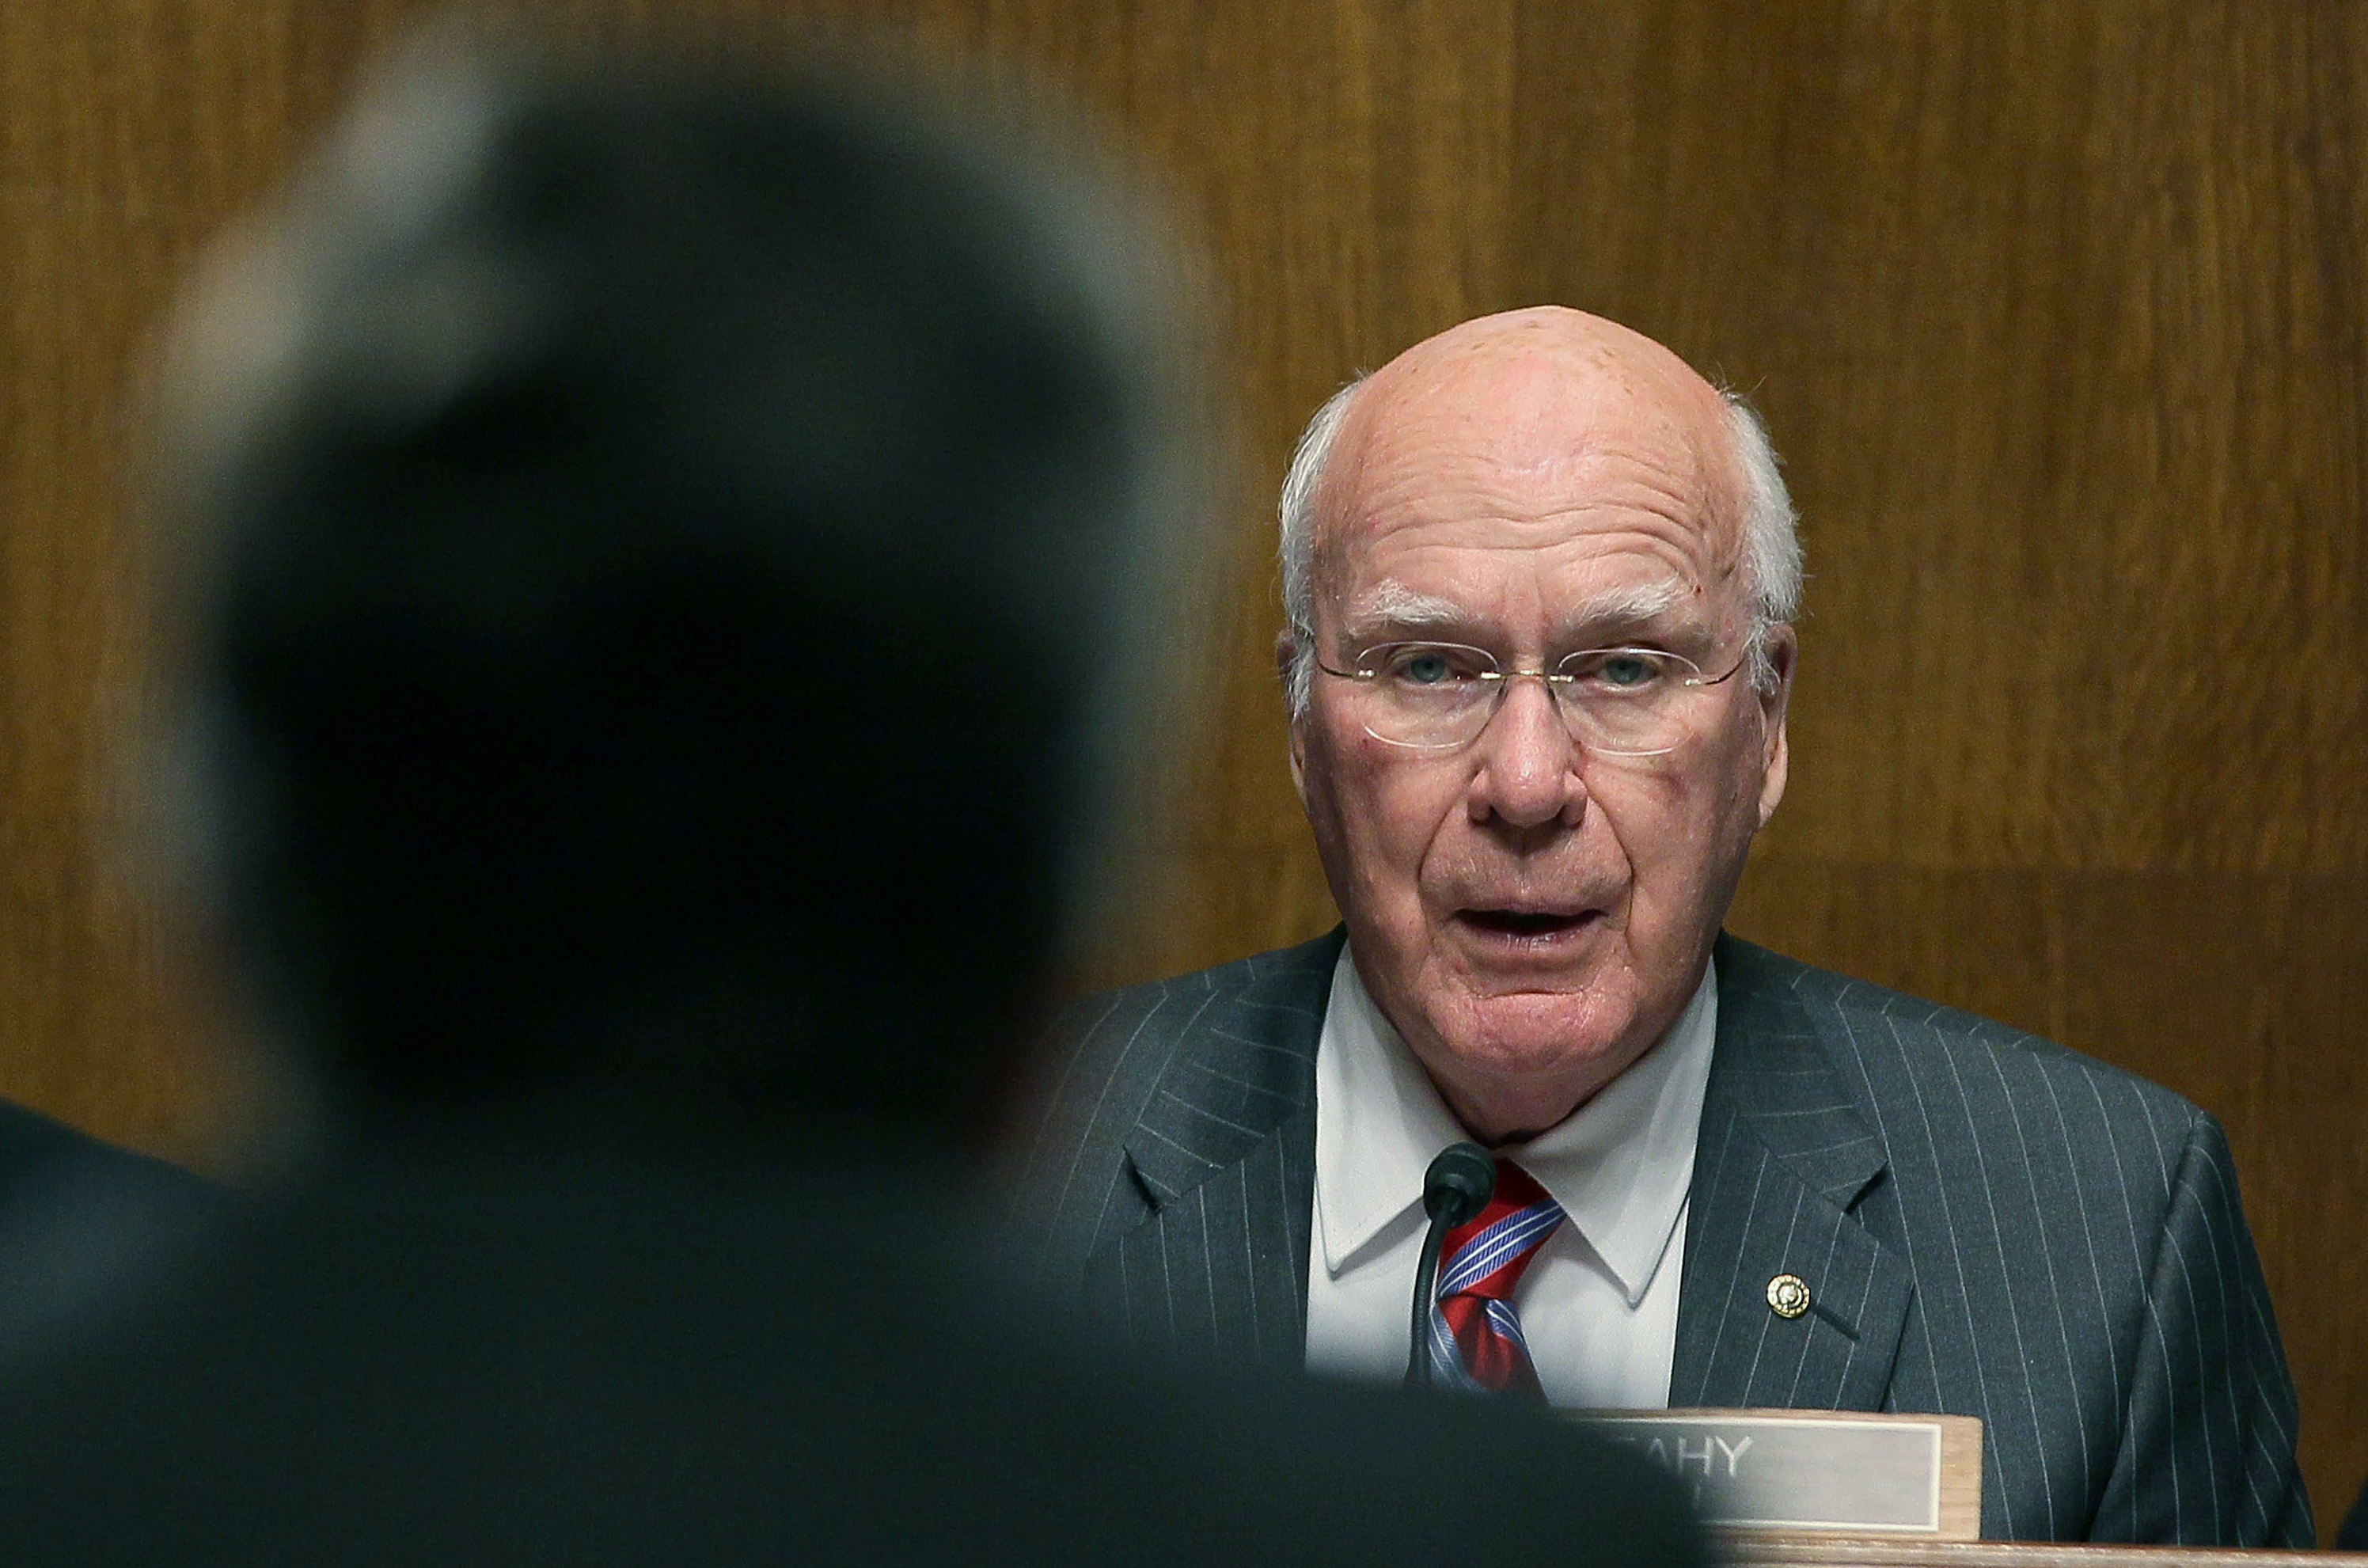 Senate Judiciary chairman Patrick Leahy, whose FISA Accountability and Privacy Protection Act rewrites the ground rules for challenging warrantless demands for customer records from the FBI. A U.S. provider is alarmed.